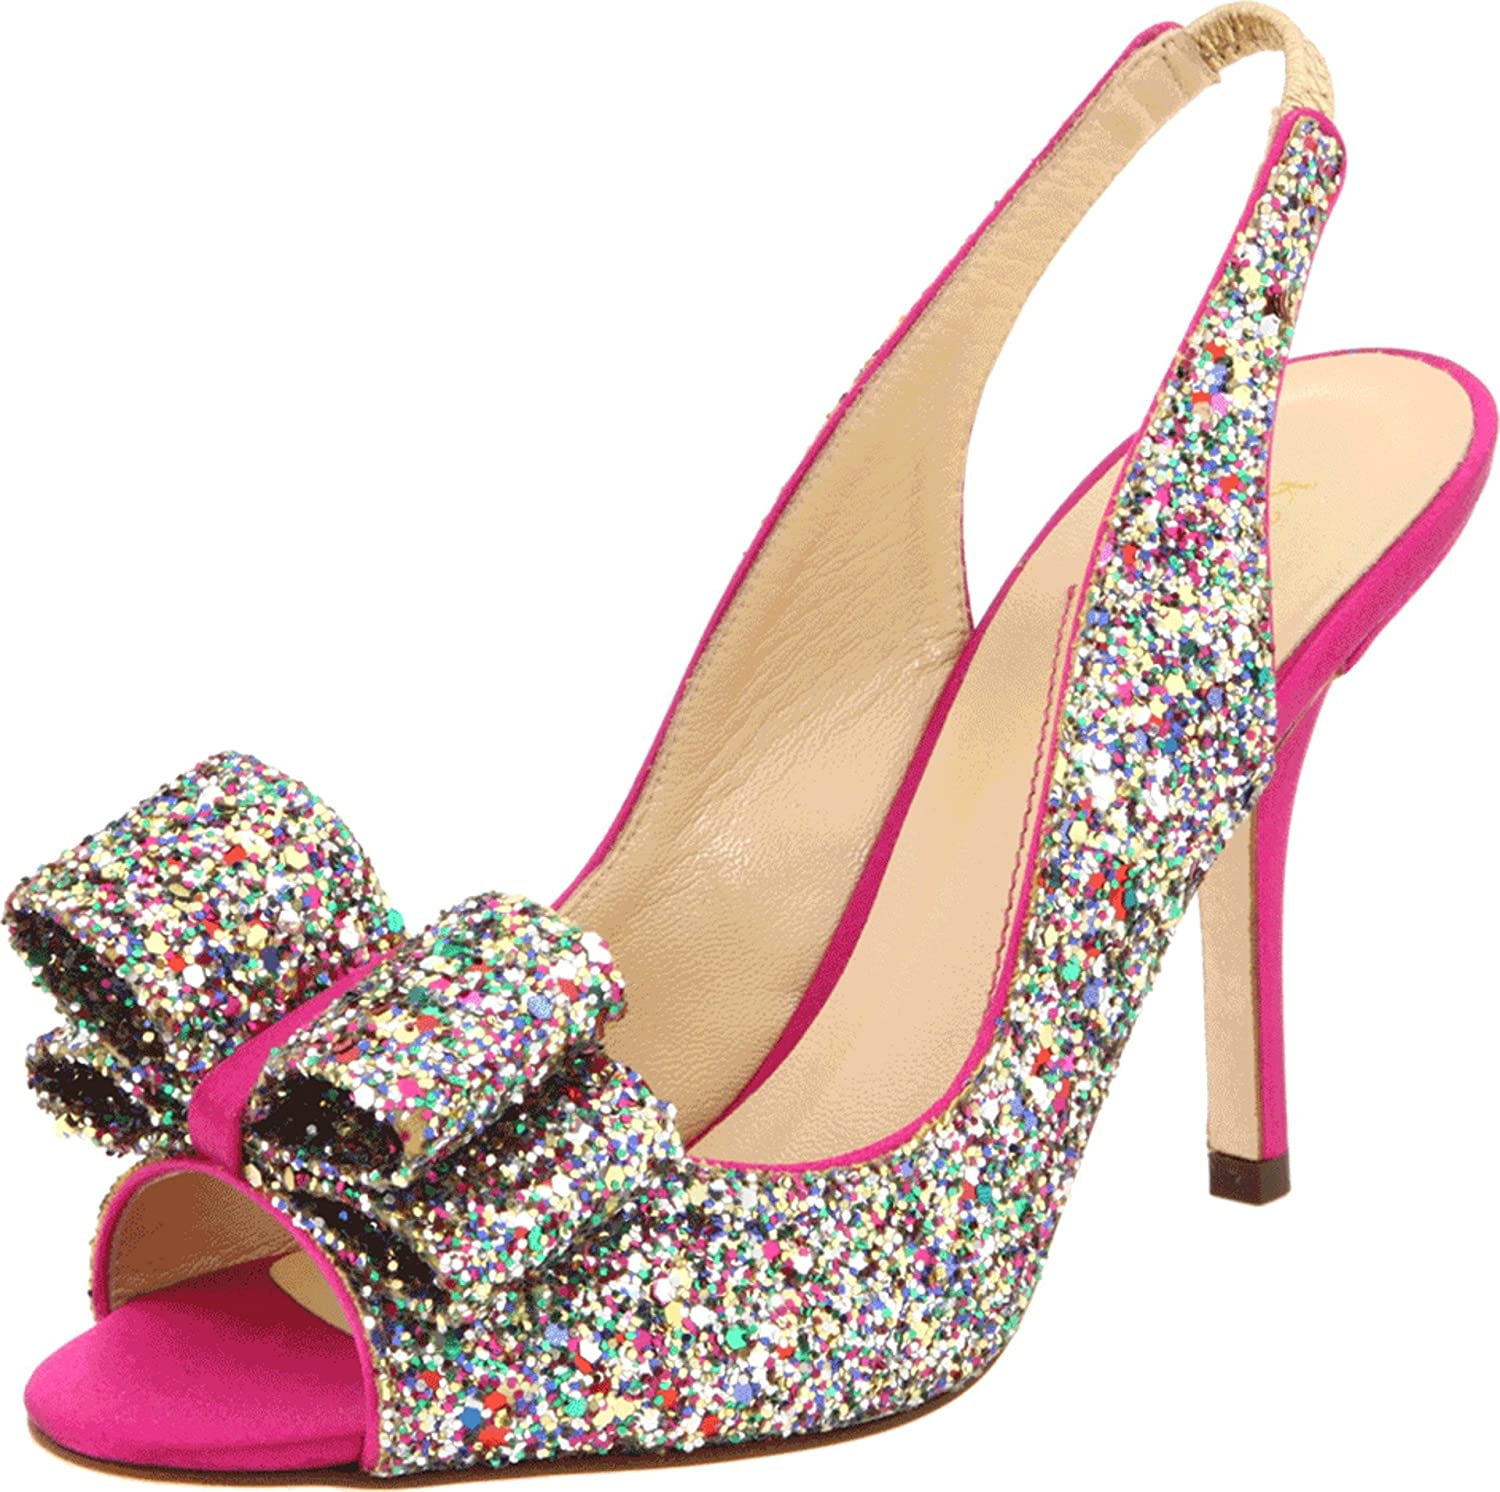 Women's Charming Hot Pink Heel Glitter Bow Slingback Pump by Kate Spade New York - DeluxeAdultCostumes.com